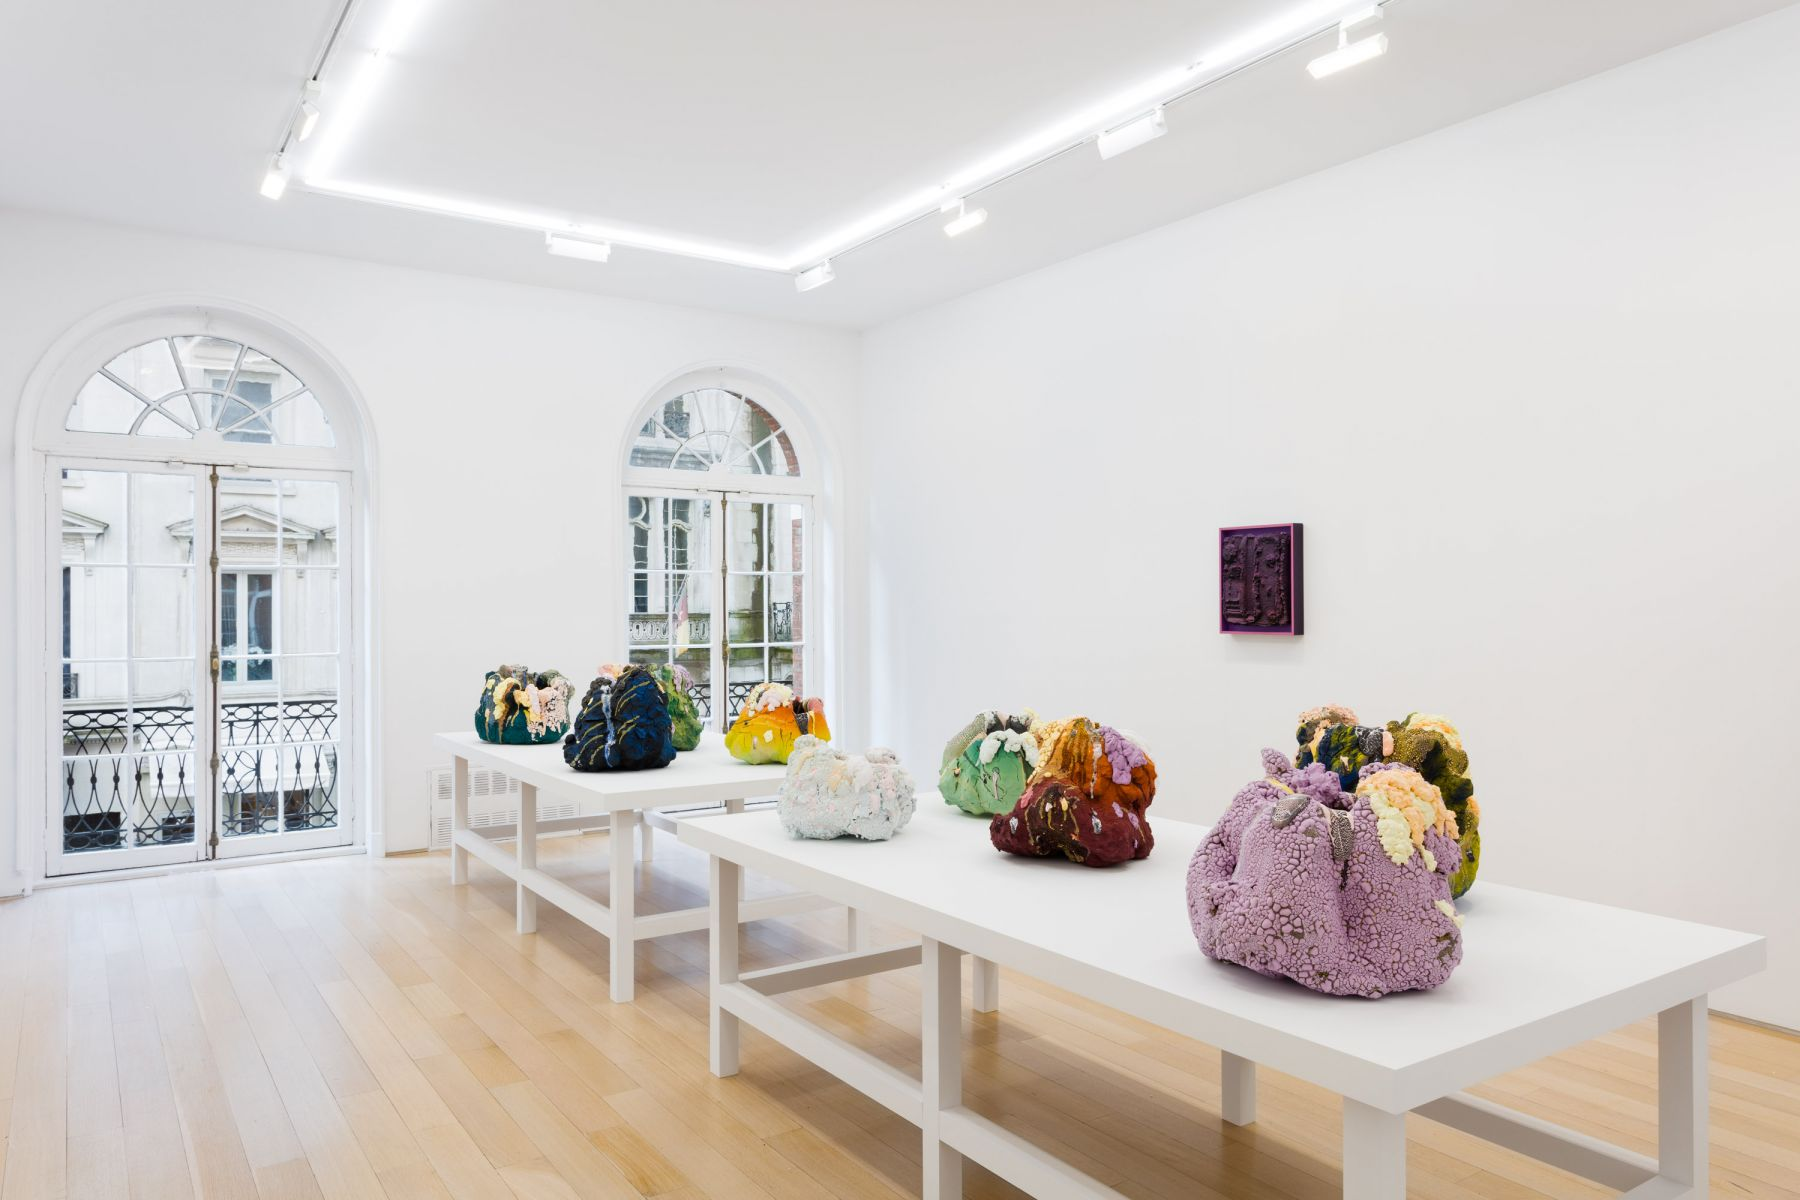 Gallery installation view 2019